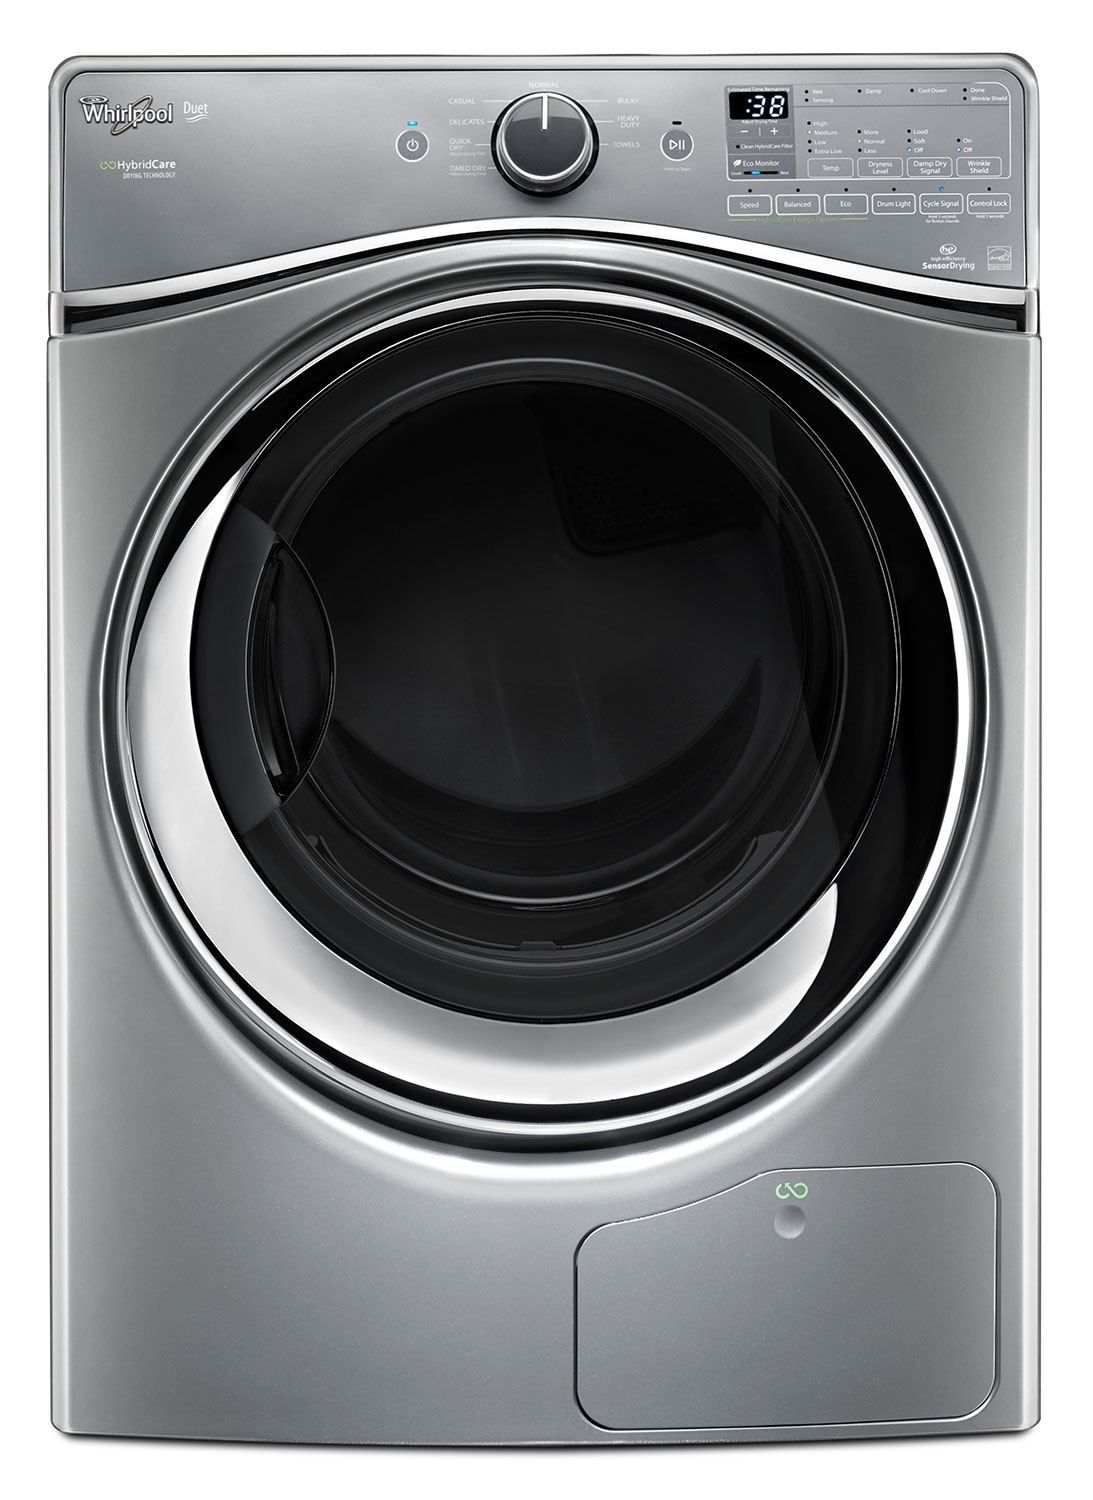 Washers and Dryers - Whirlpool Chrome Shadow Electric Dryer (7.3 Cu. Ft.) - YWED99HEDC